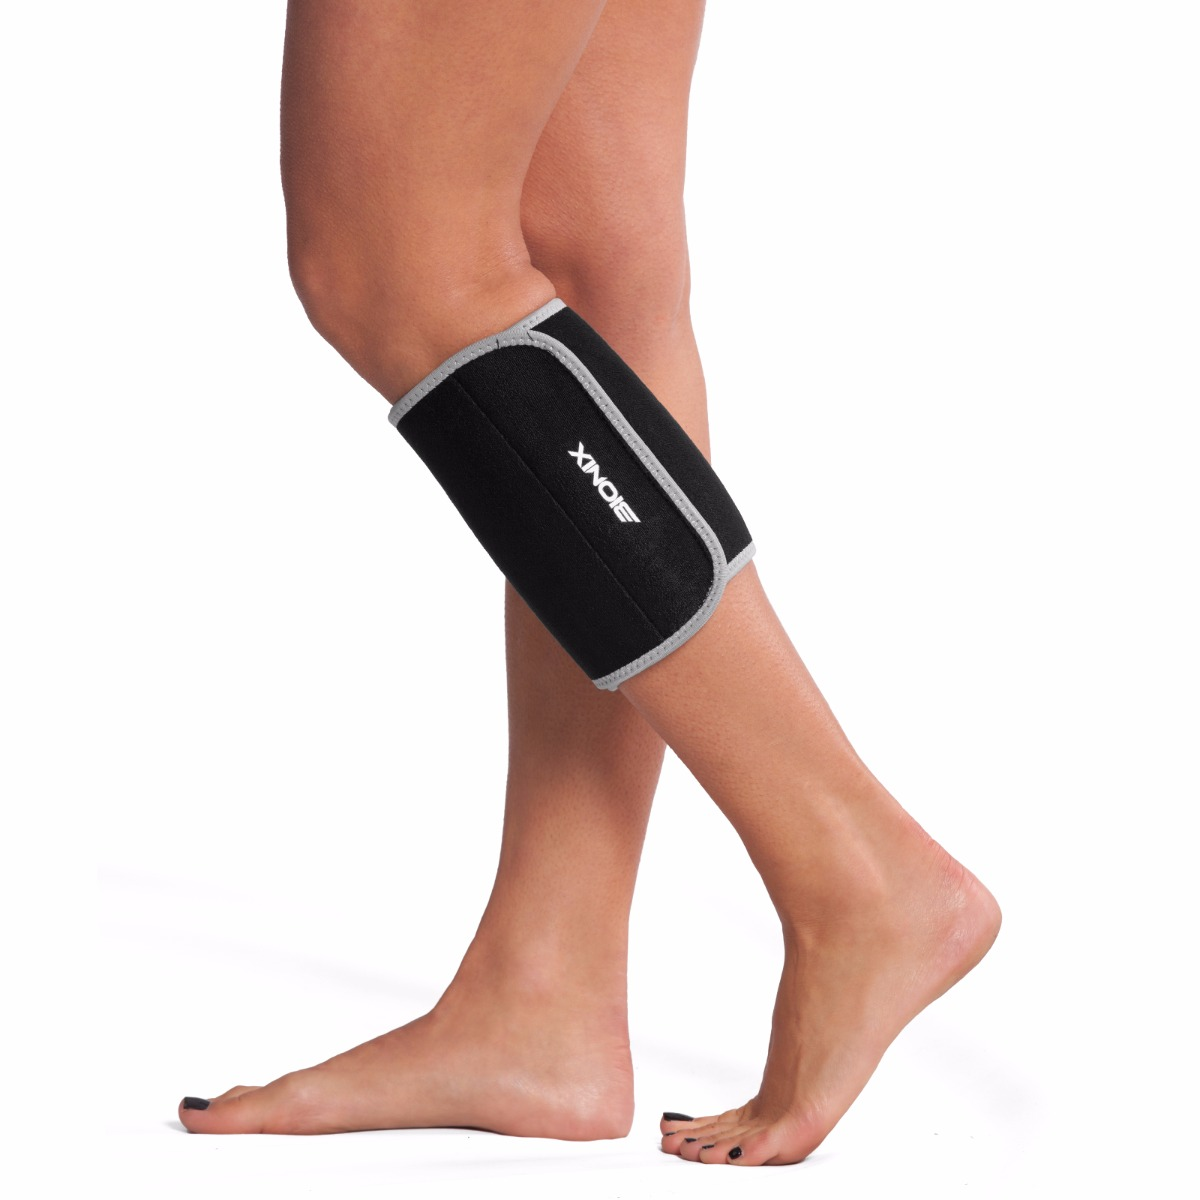 7f9eb501ca Details about Running Calf Support Adjustable Neoprene Shin Splint Compression  Sleeves PAIR